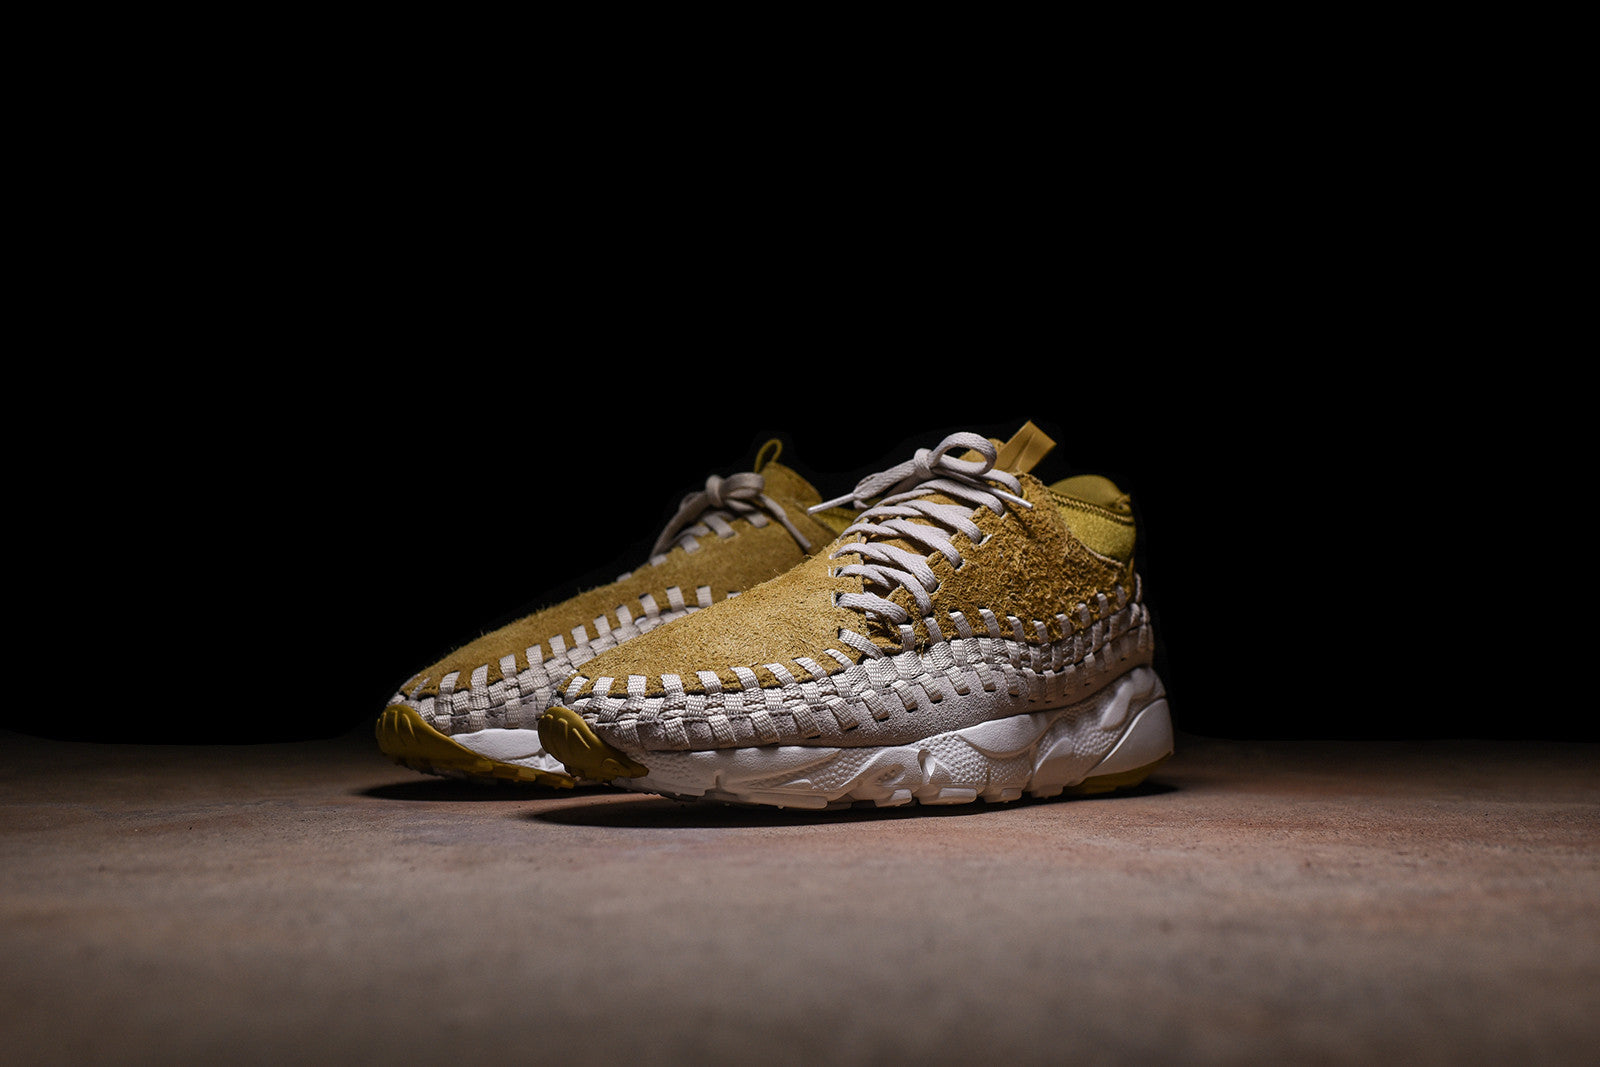 Nike Air Footscape Woven Chukka QS - Gold / Light Oreowood